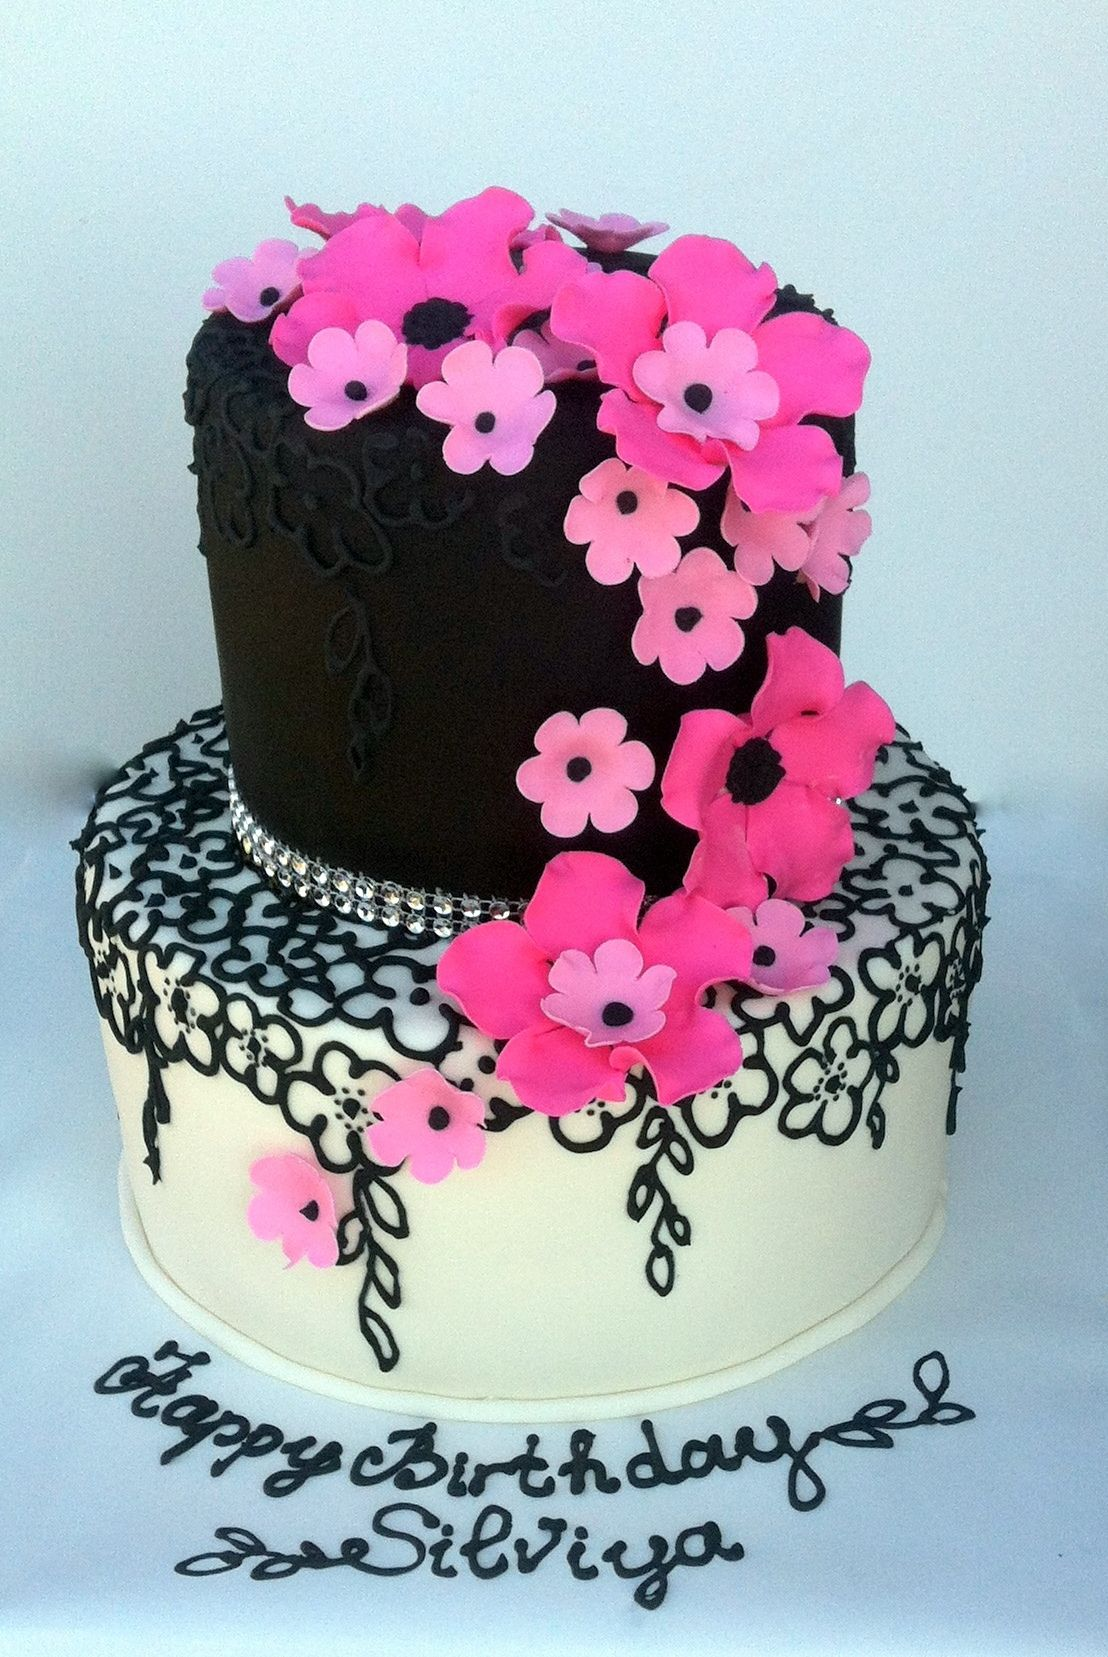 Astounding Photo 48Jpg Cake Tiered Cakes Hot Pink Cakes Funny Birthday Cards Online Overcheapnameinfo